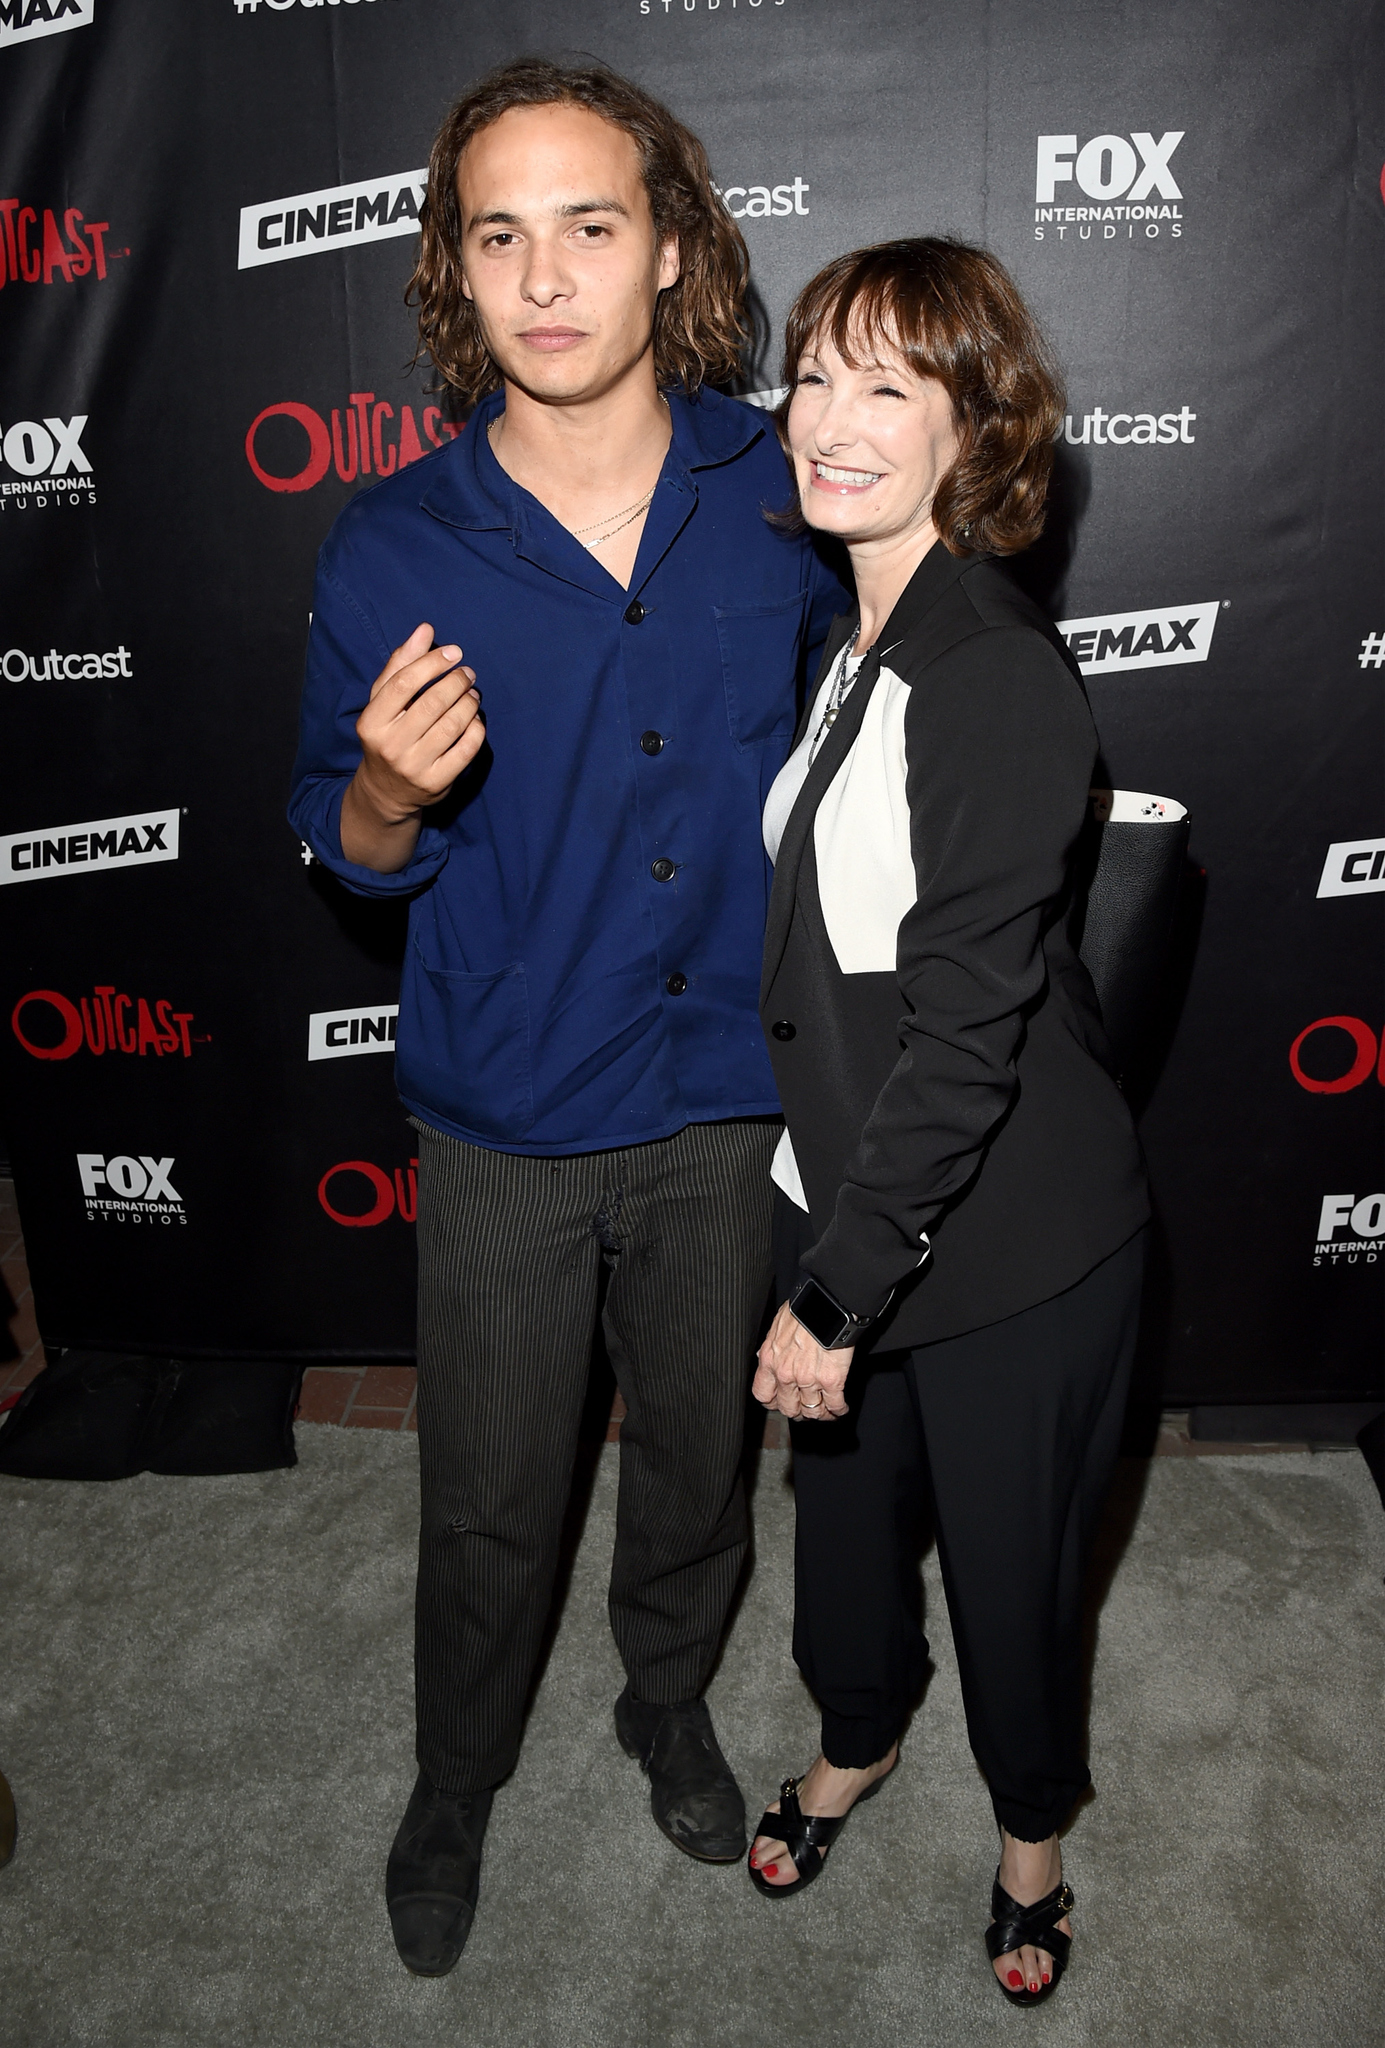 Gale Anne Hurd and Frank Dillane at an event for Outcast (2016)